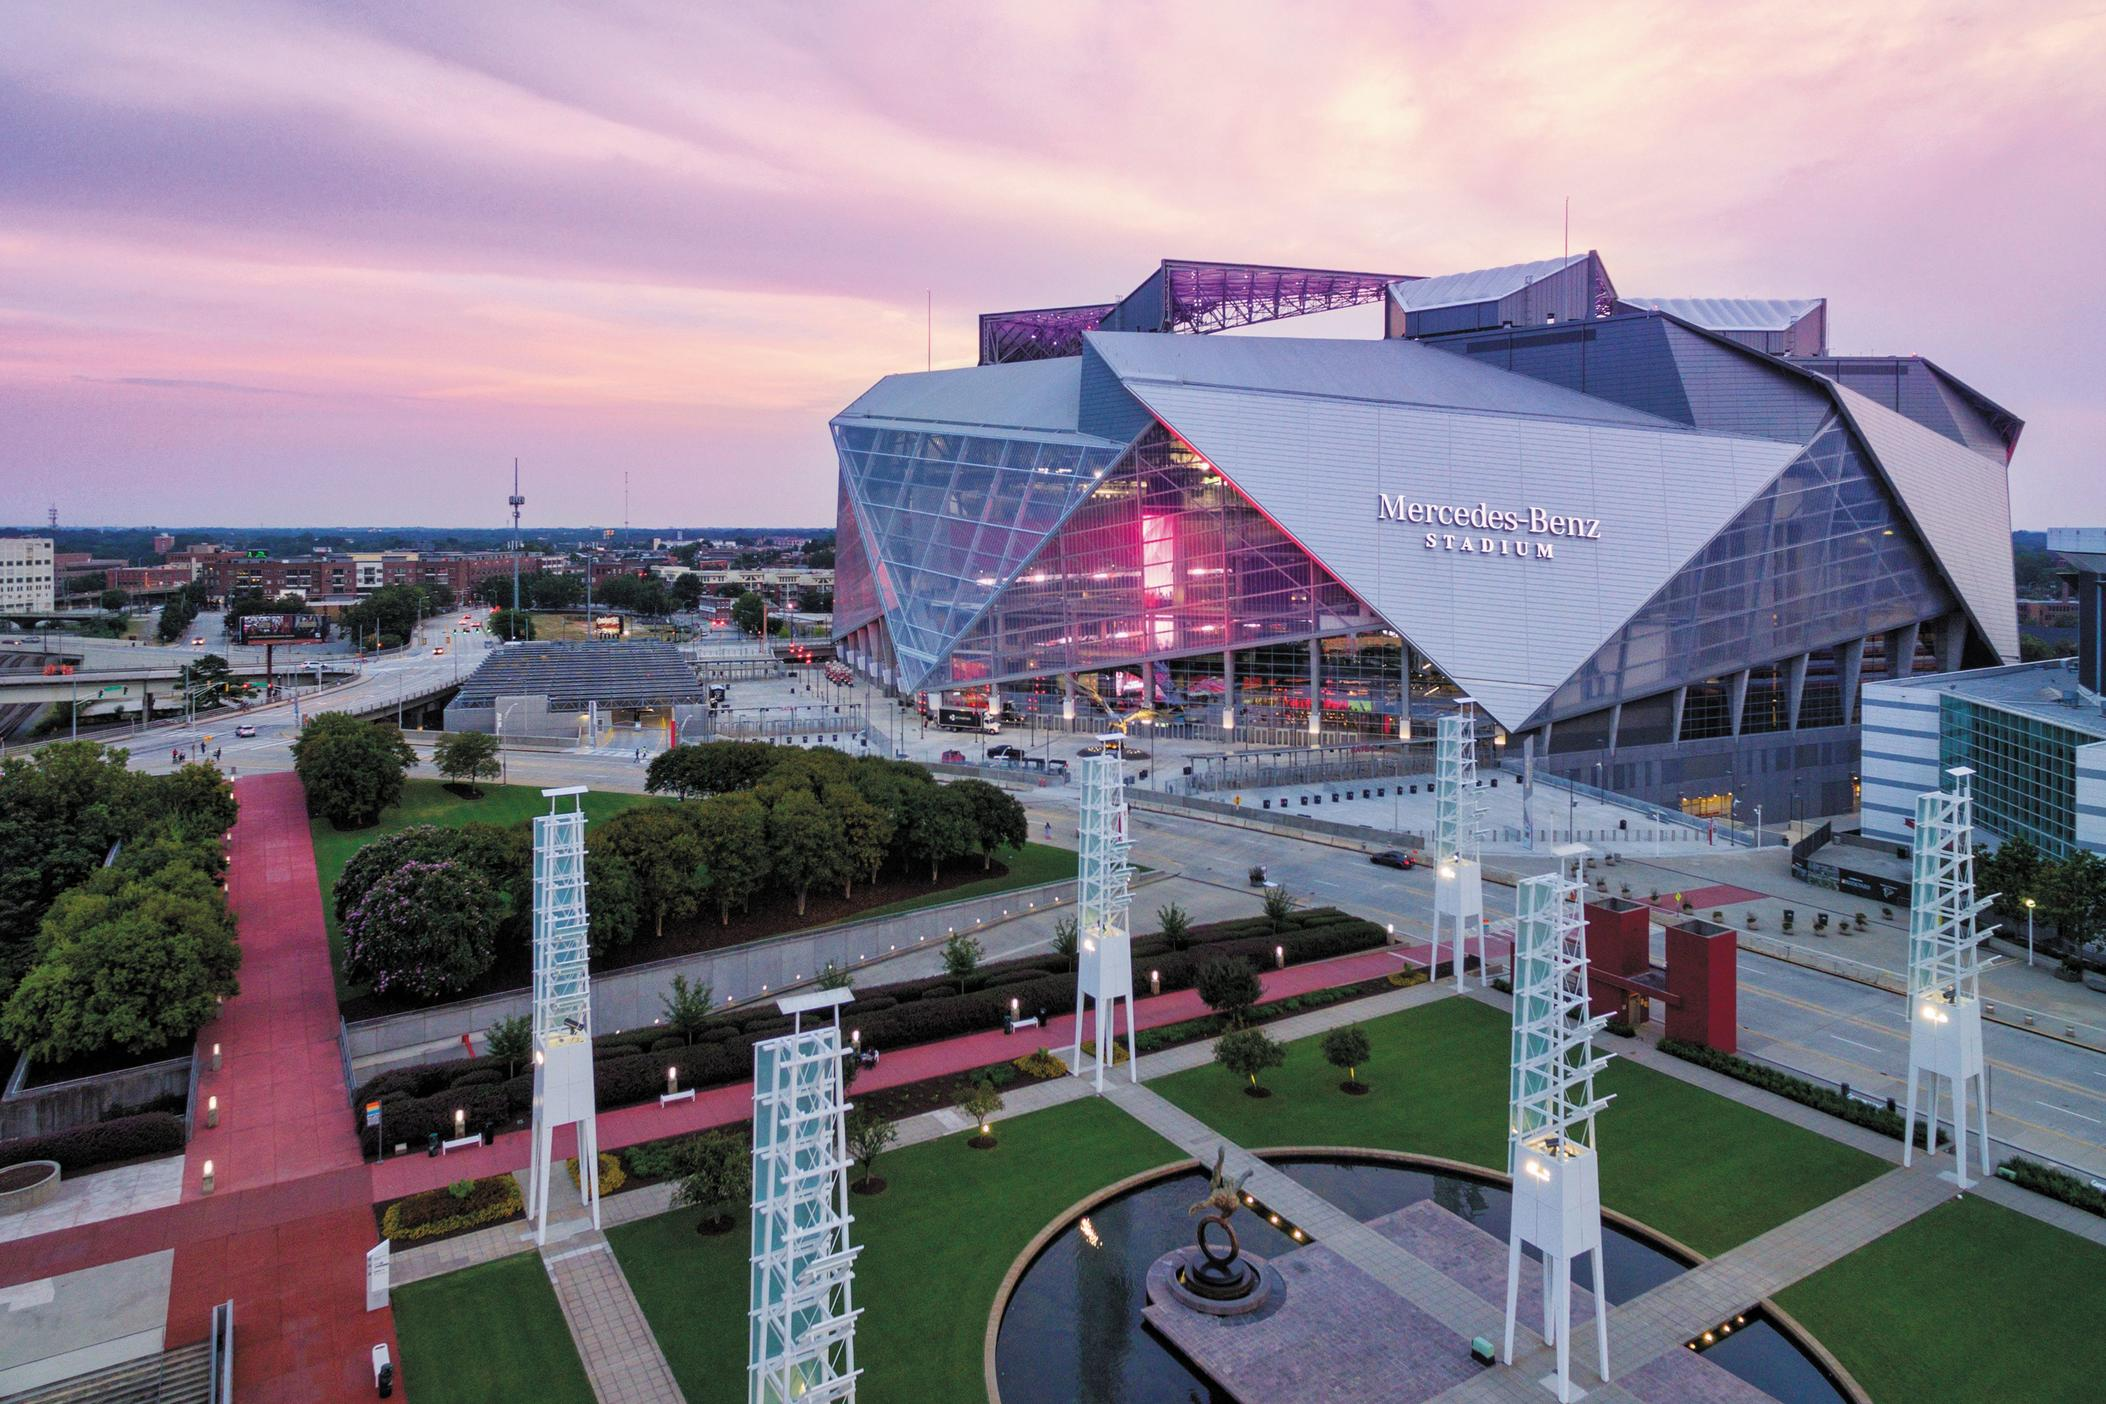 Mercedes-Benz Stadium. Photo by David Kosmos Smith courtesy of AMBSE Creative